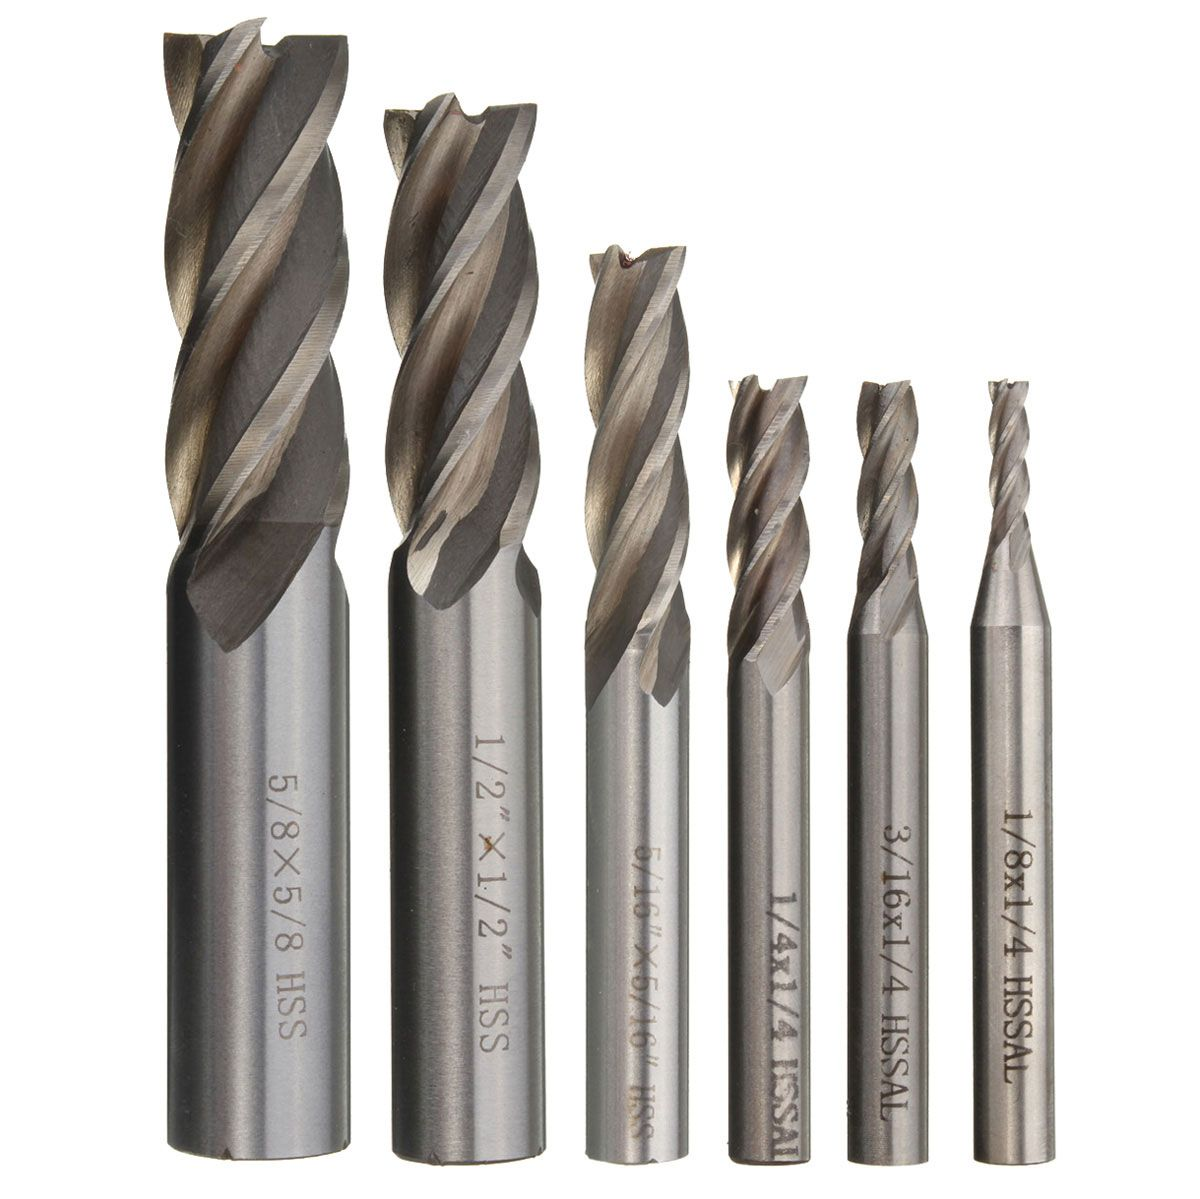 1 INCH 4 FLUTE HSS END MILL NEW IN PACKAGE